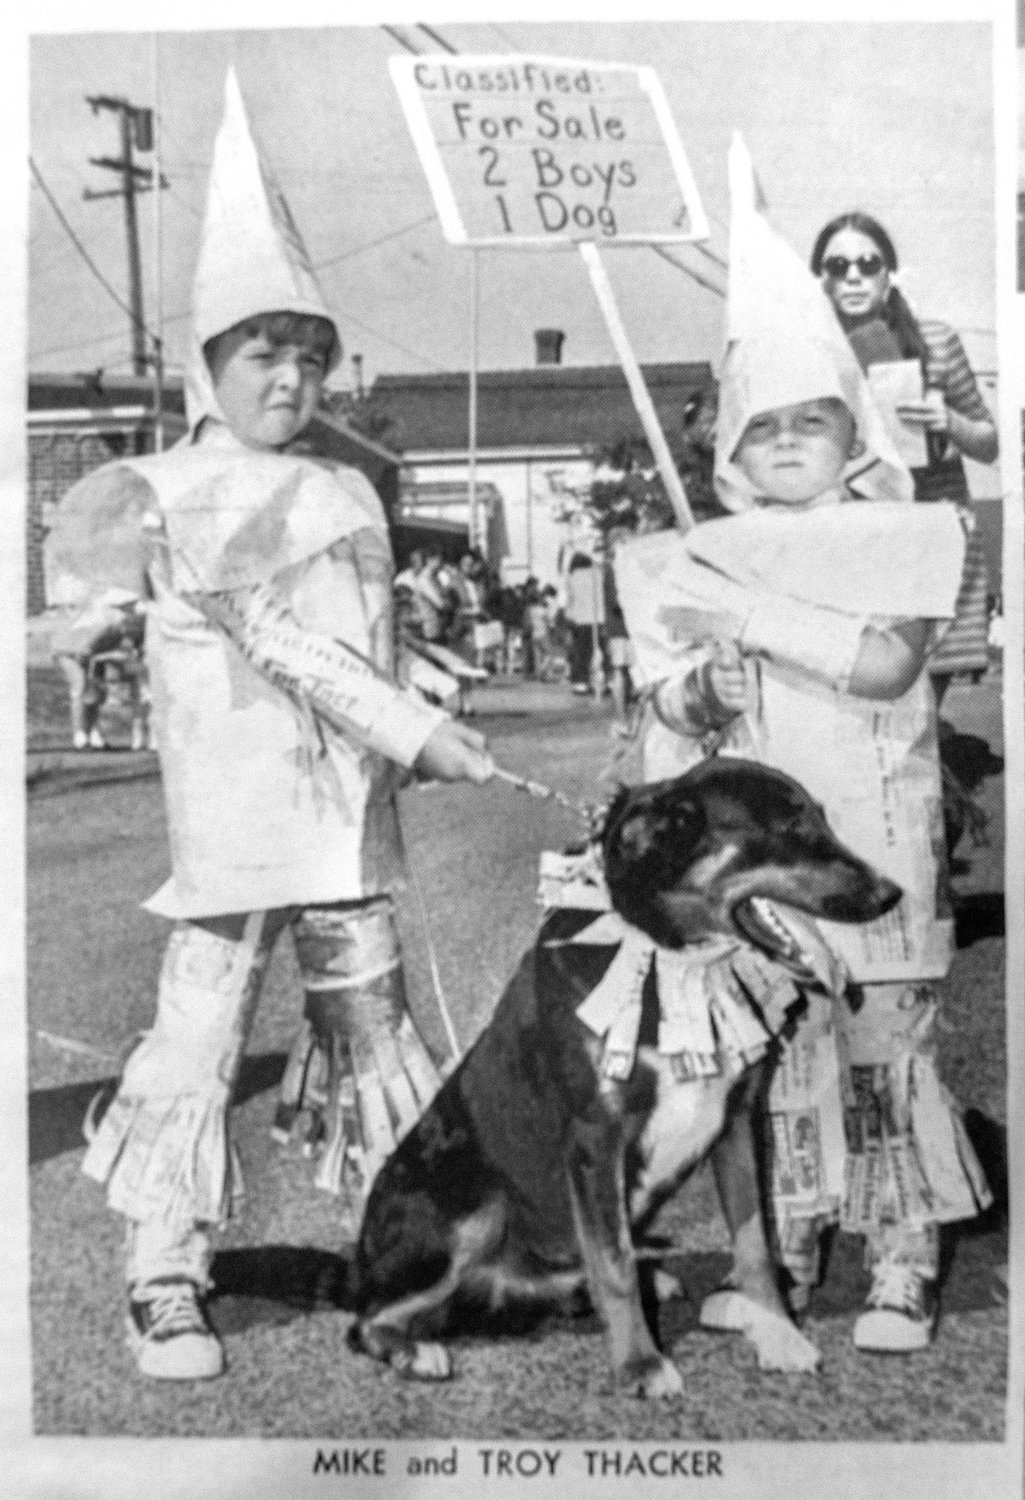 Mike and Troy Thacker dressed up for the 1969 Pet Parade covered in newspaper. Sign reads: For sale 2 boys 1 dog.